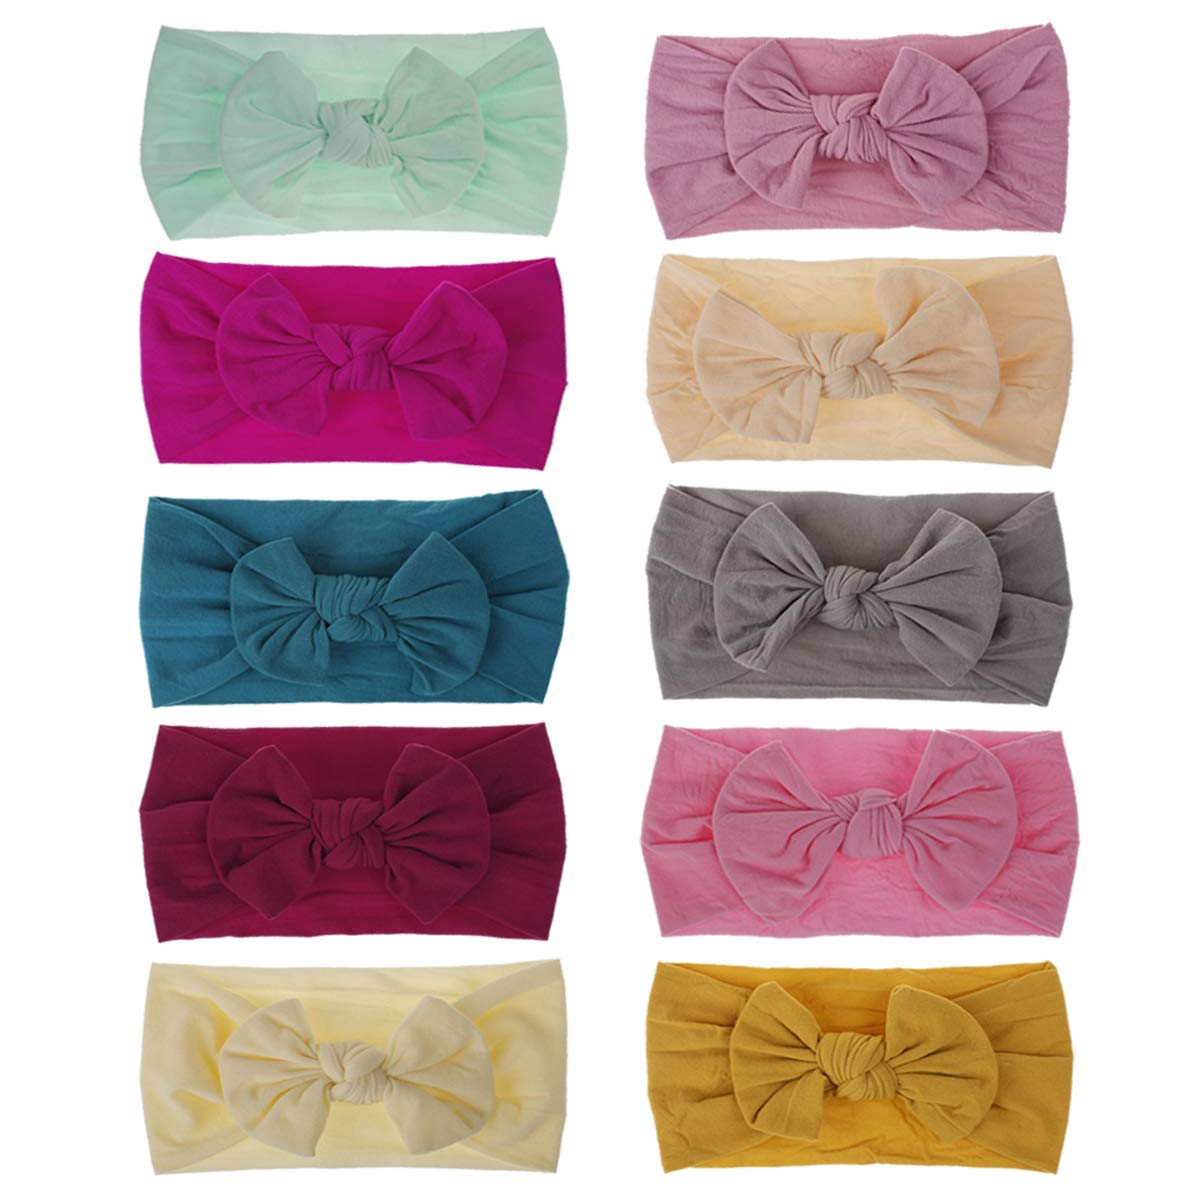 Baby Girl Headbands Newborn Infant Brand new Ch and New York Mall Toddler Bows Hairbands